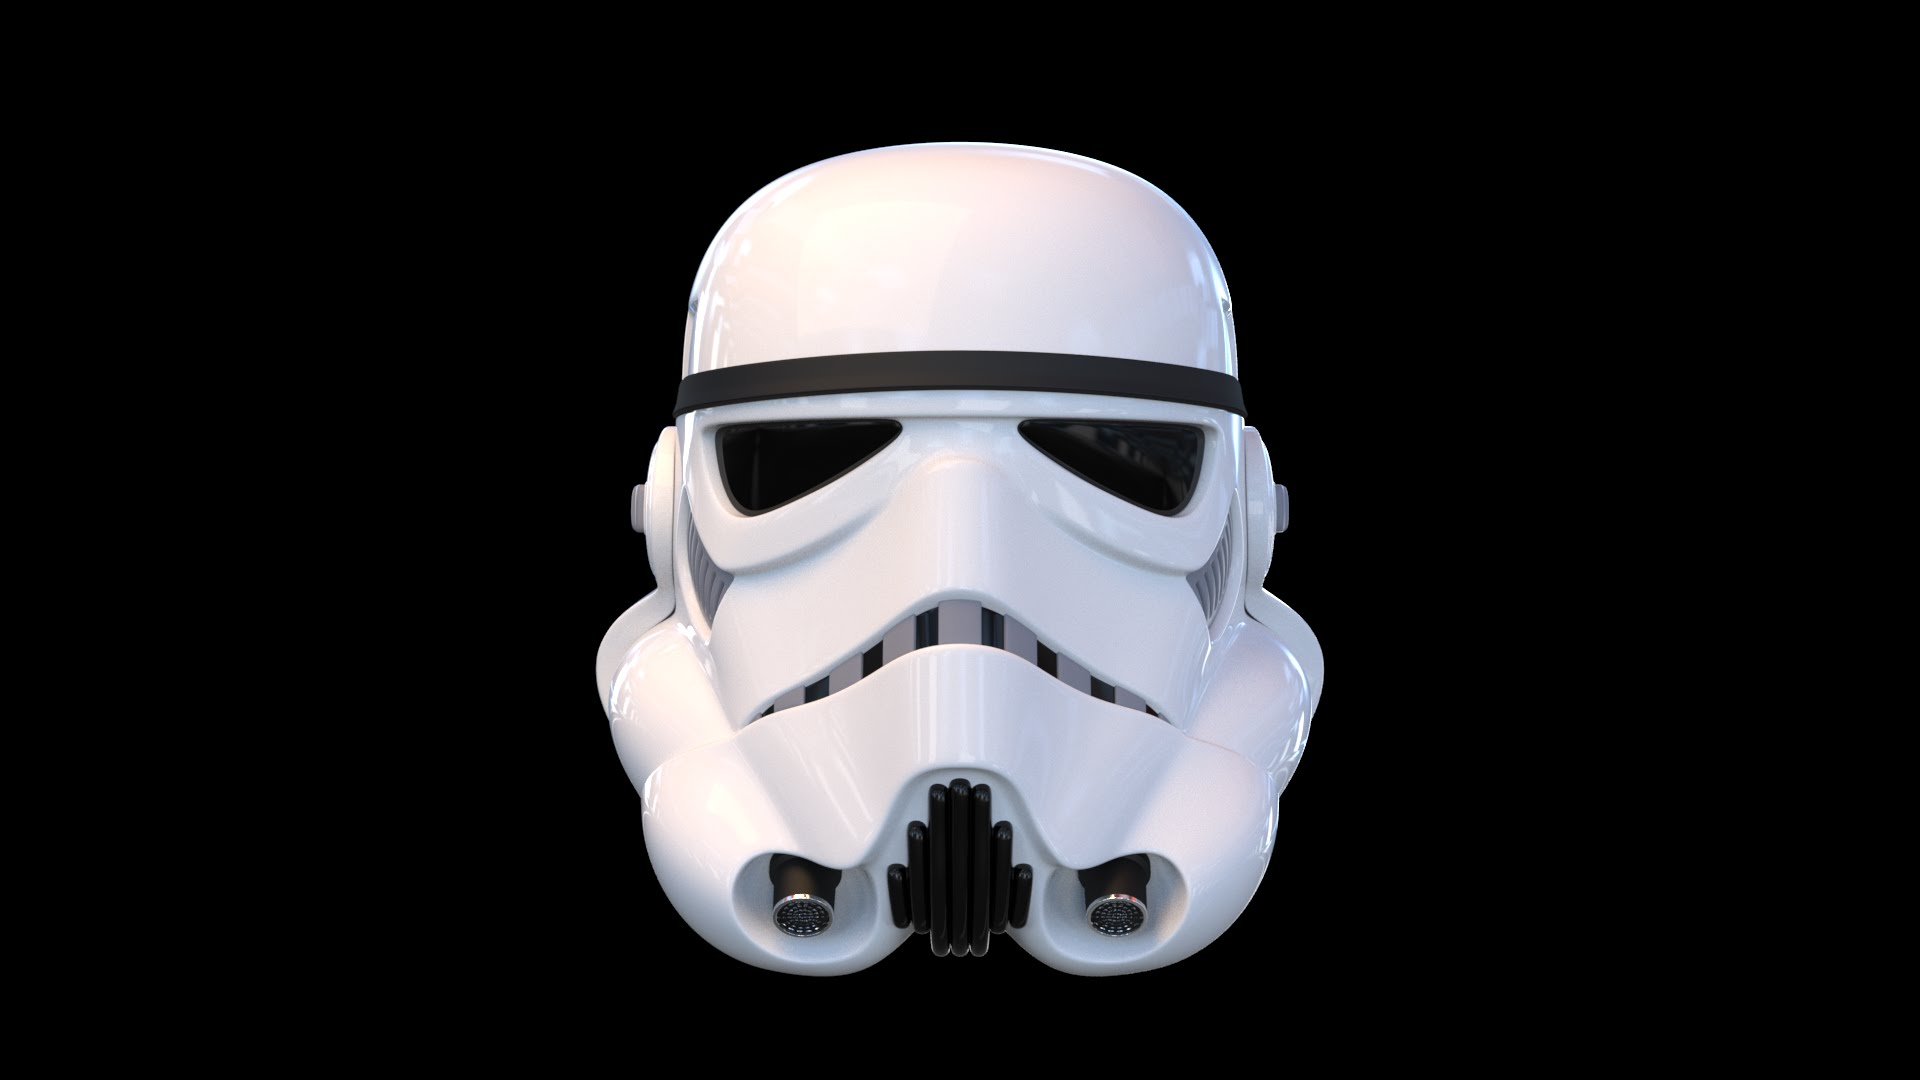 1920x1080 Star Wars Stormtrooper Helmet (Original) 3d Time Lapse And Render